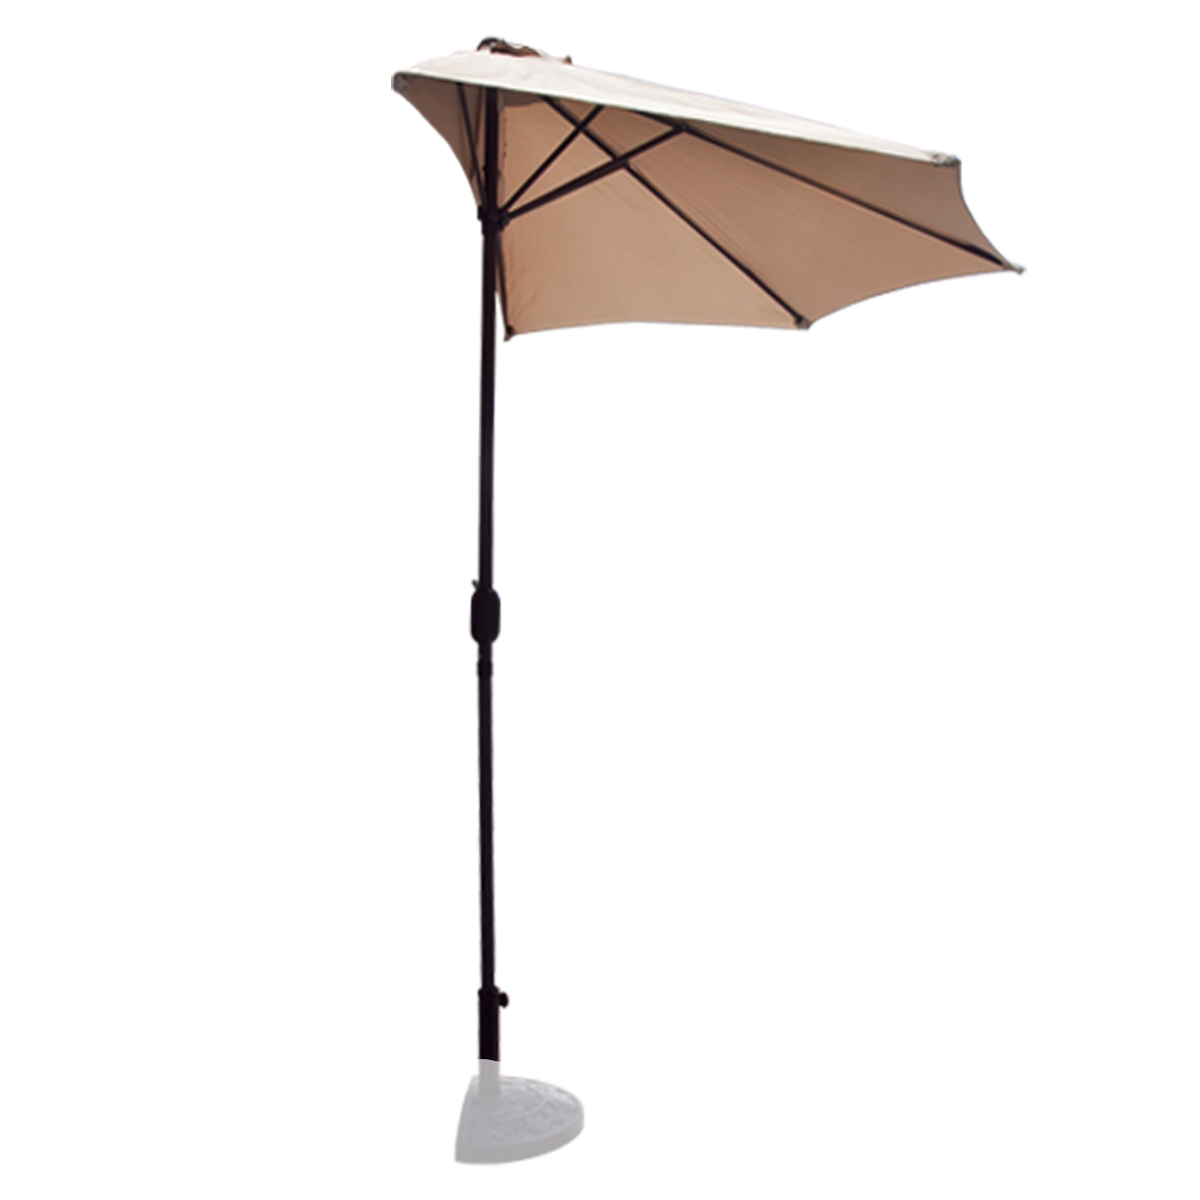 10 39 FT Half Patio Umbrella Feet Beige Outdoor Wall Balcony